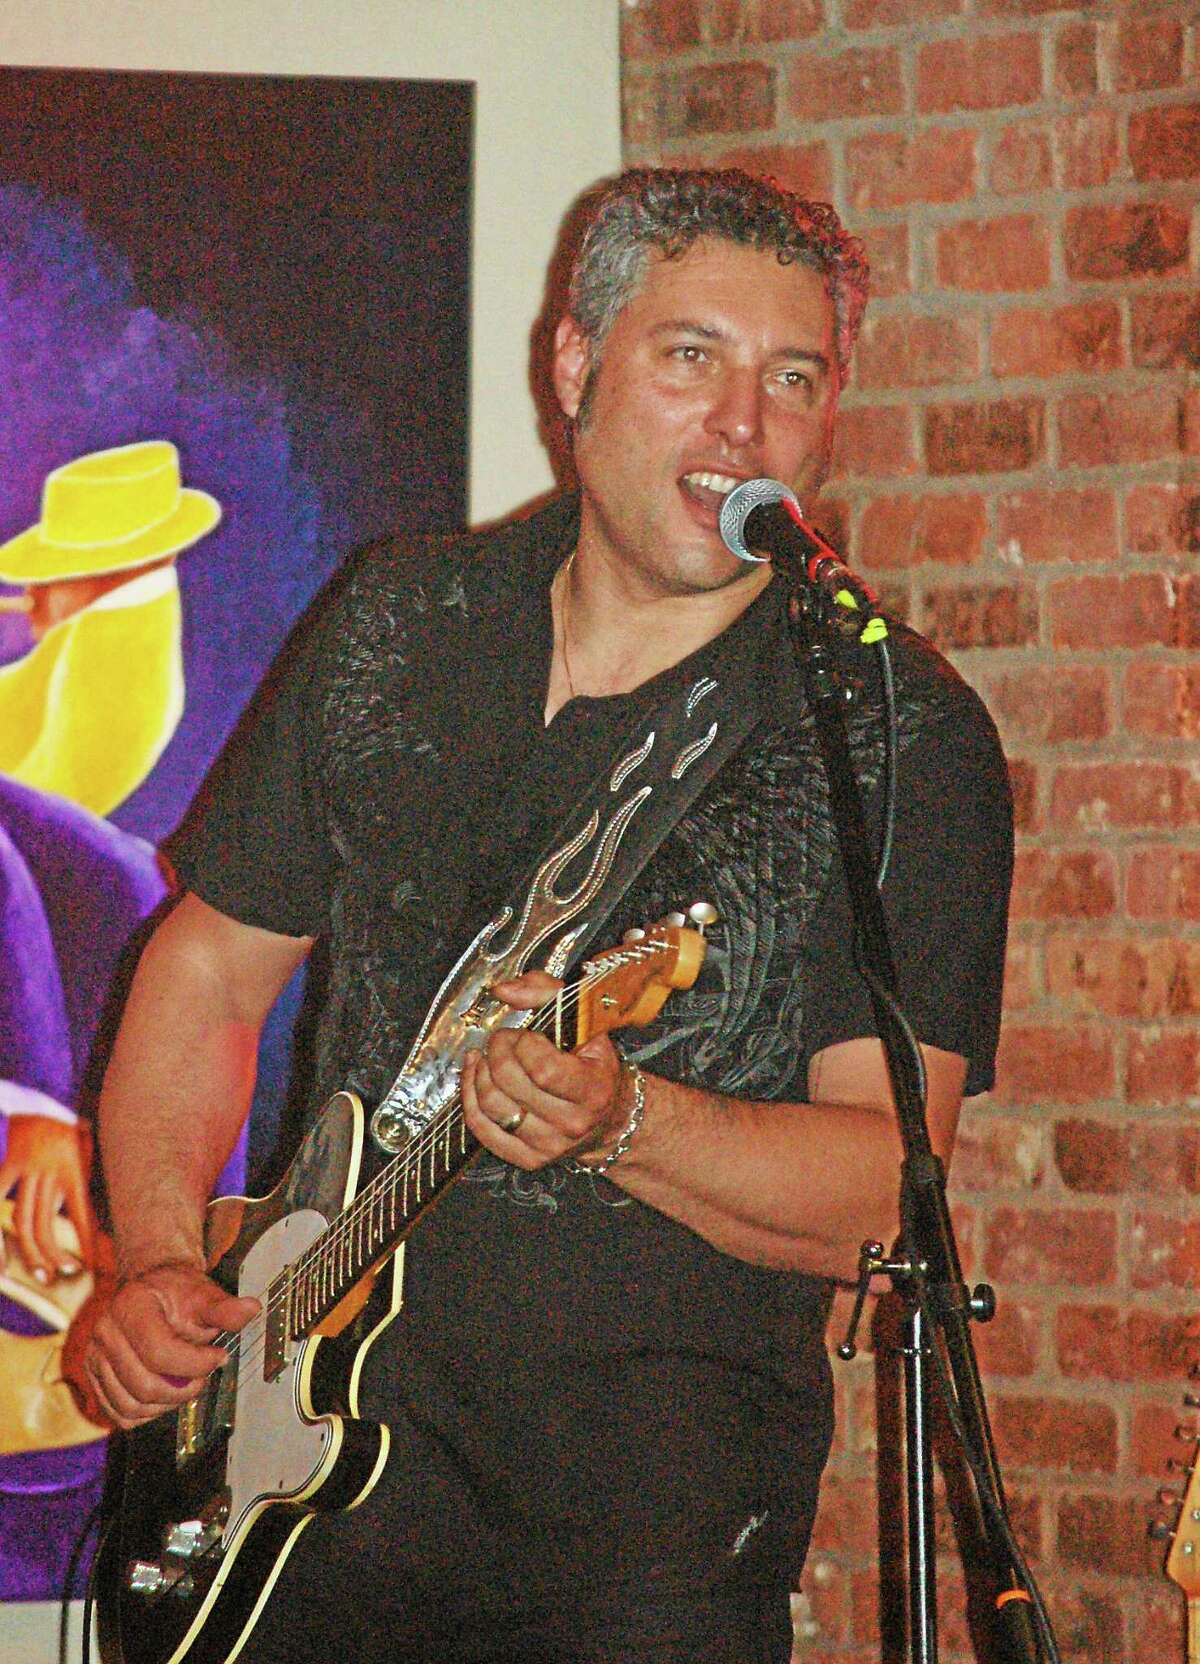 Photo by Domenic Forcella Roberto Morbioli is playing at the Cypress Restaurant in Middletown Friday.